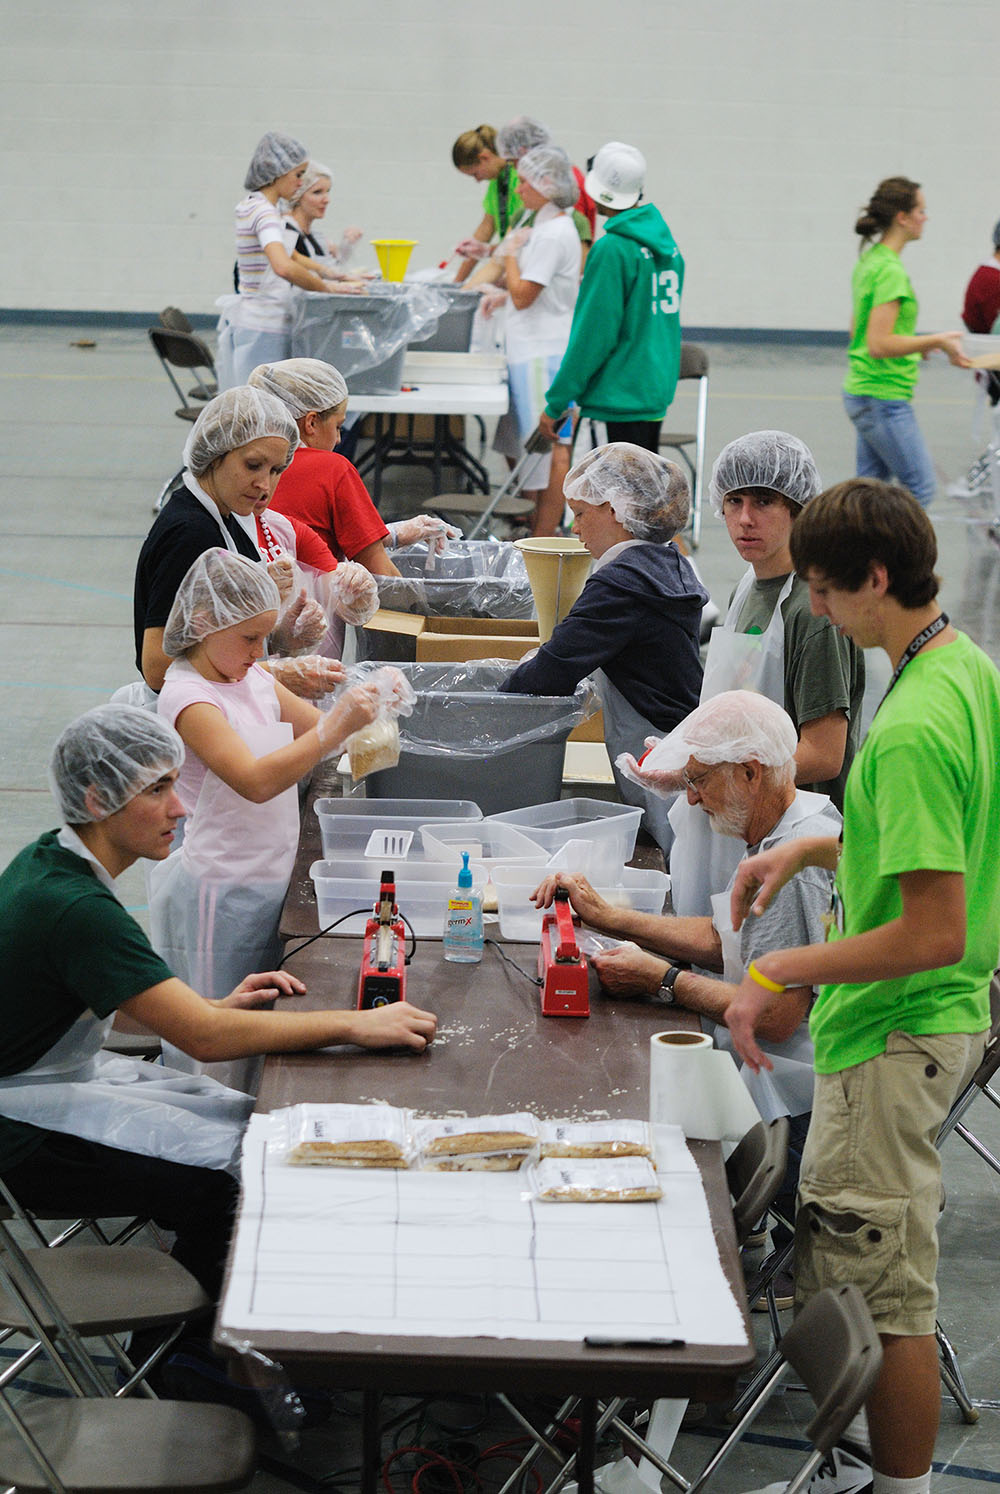 Hesston College students, faculty, staff and local community members came together to package more than 50,000 meals during Numana's food-packaging event Oct. 1.